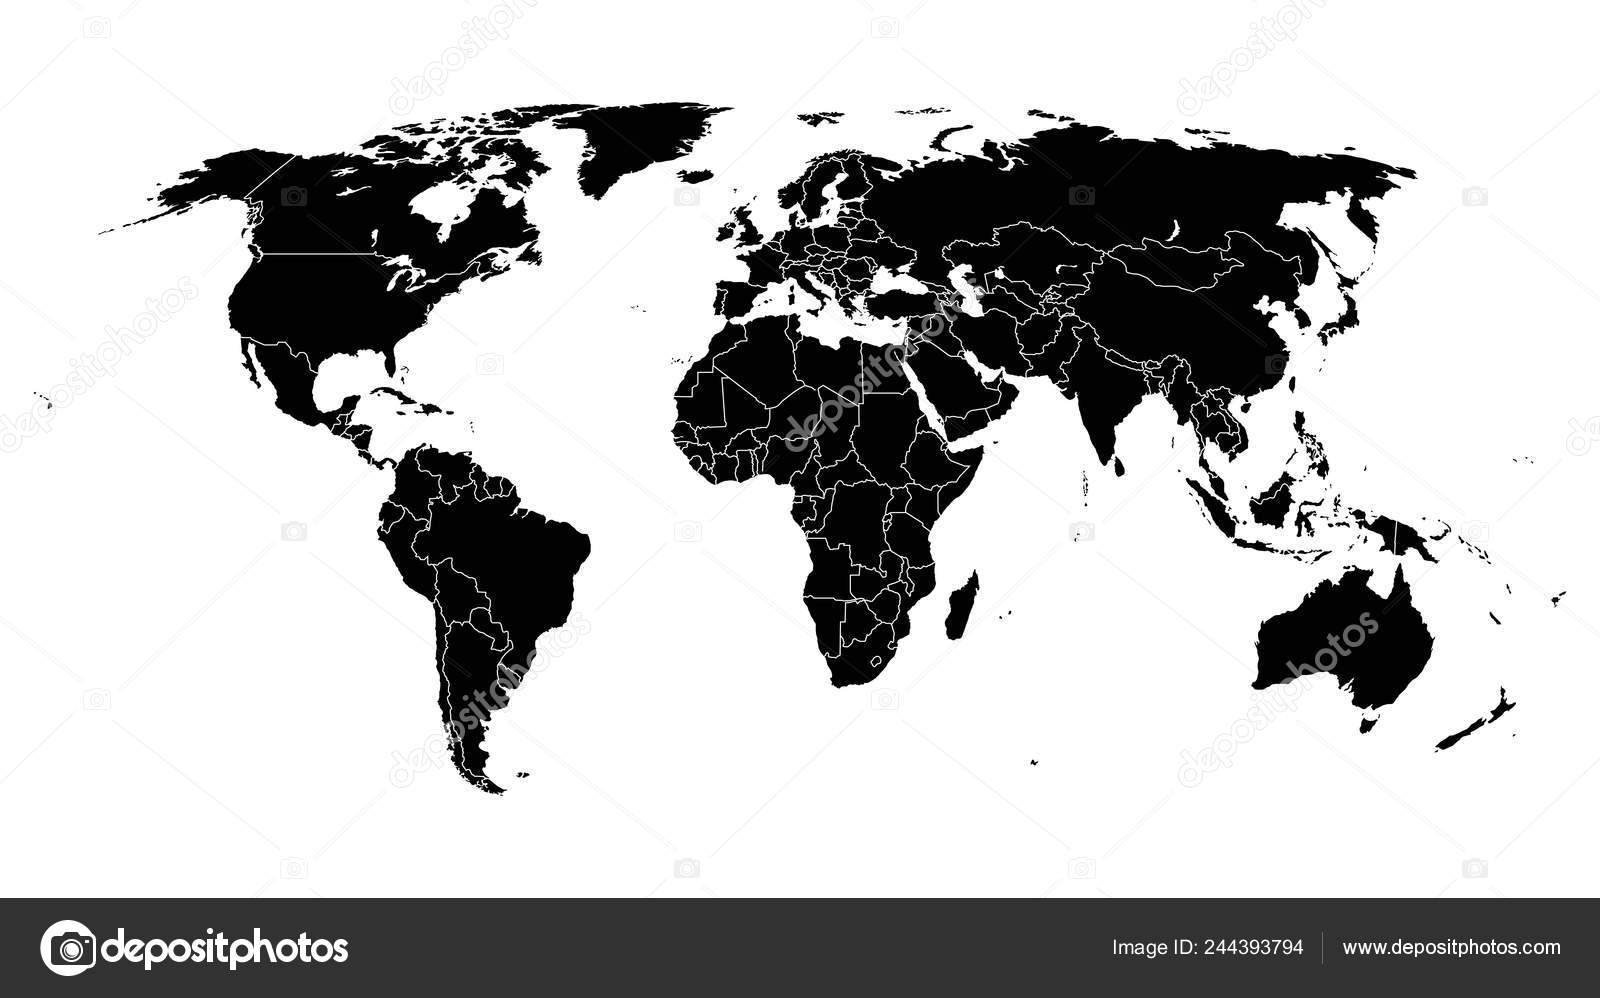 Picture of: Black World Map Countries Stock Vector C Blacklava36 244393794